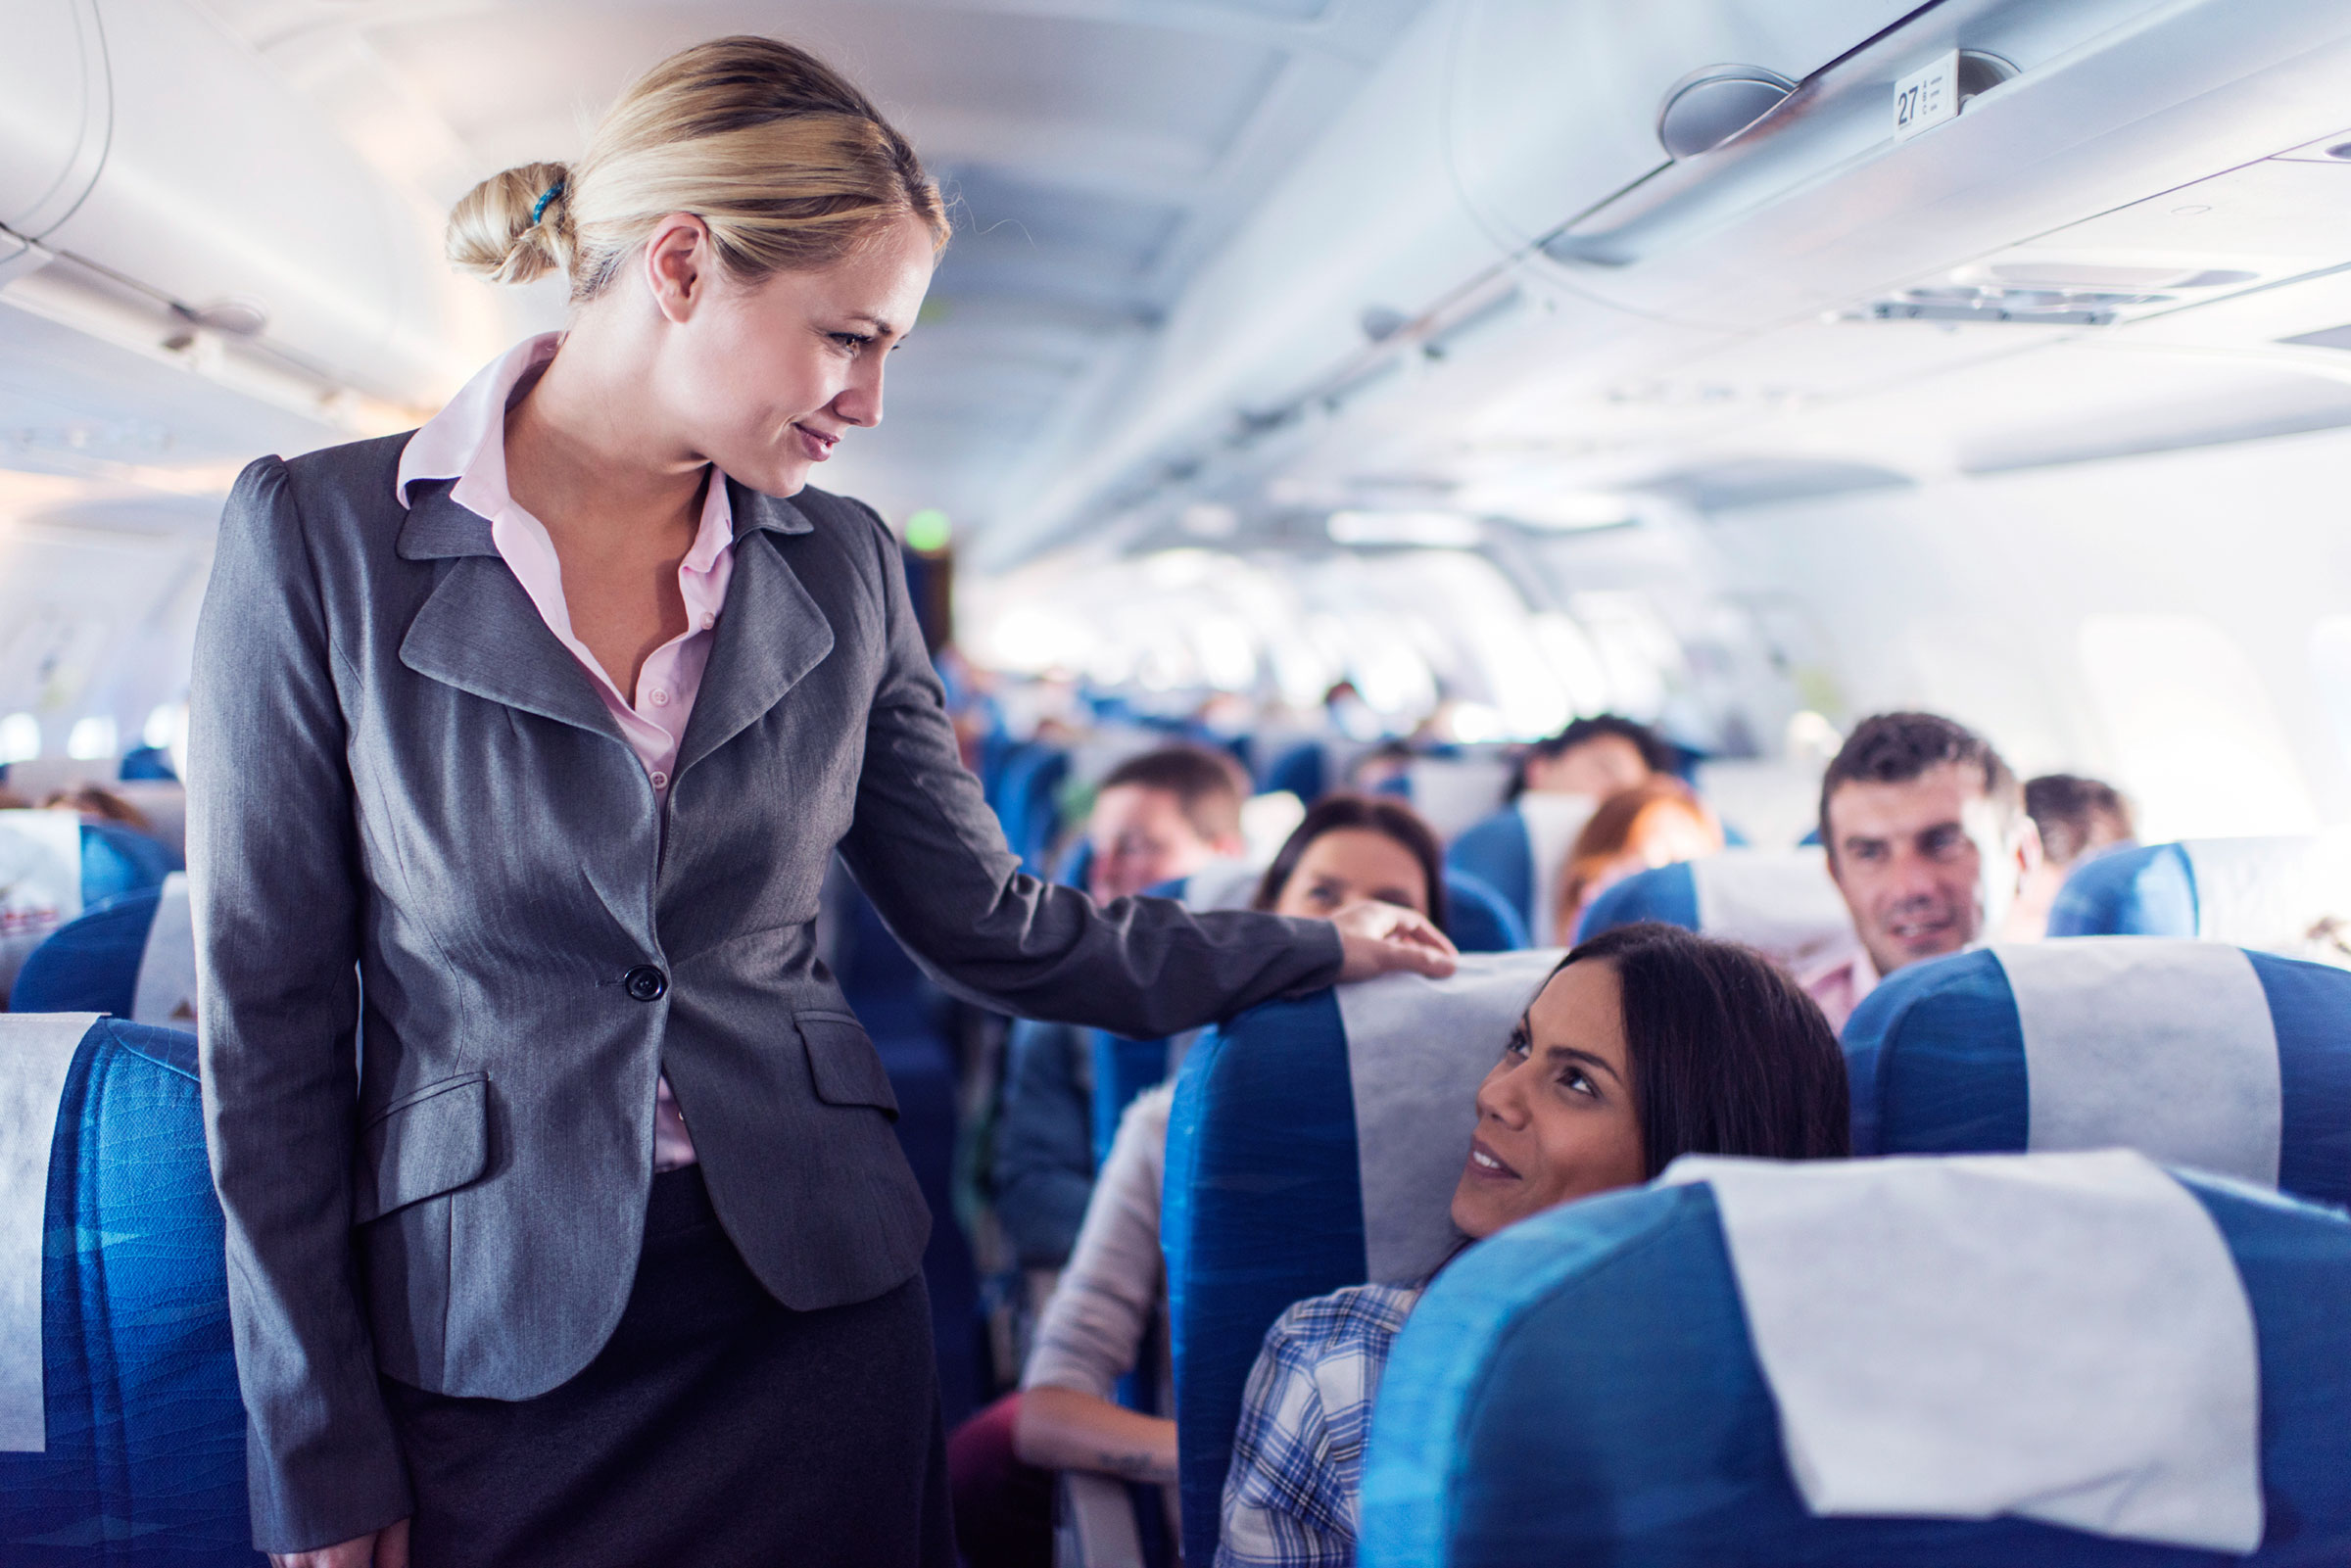 02-13-things-your-flight-attendant-wont-tell-you-rude-passengers